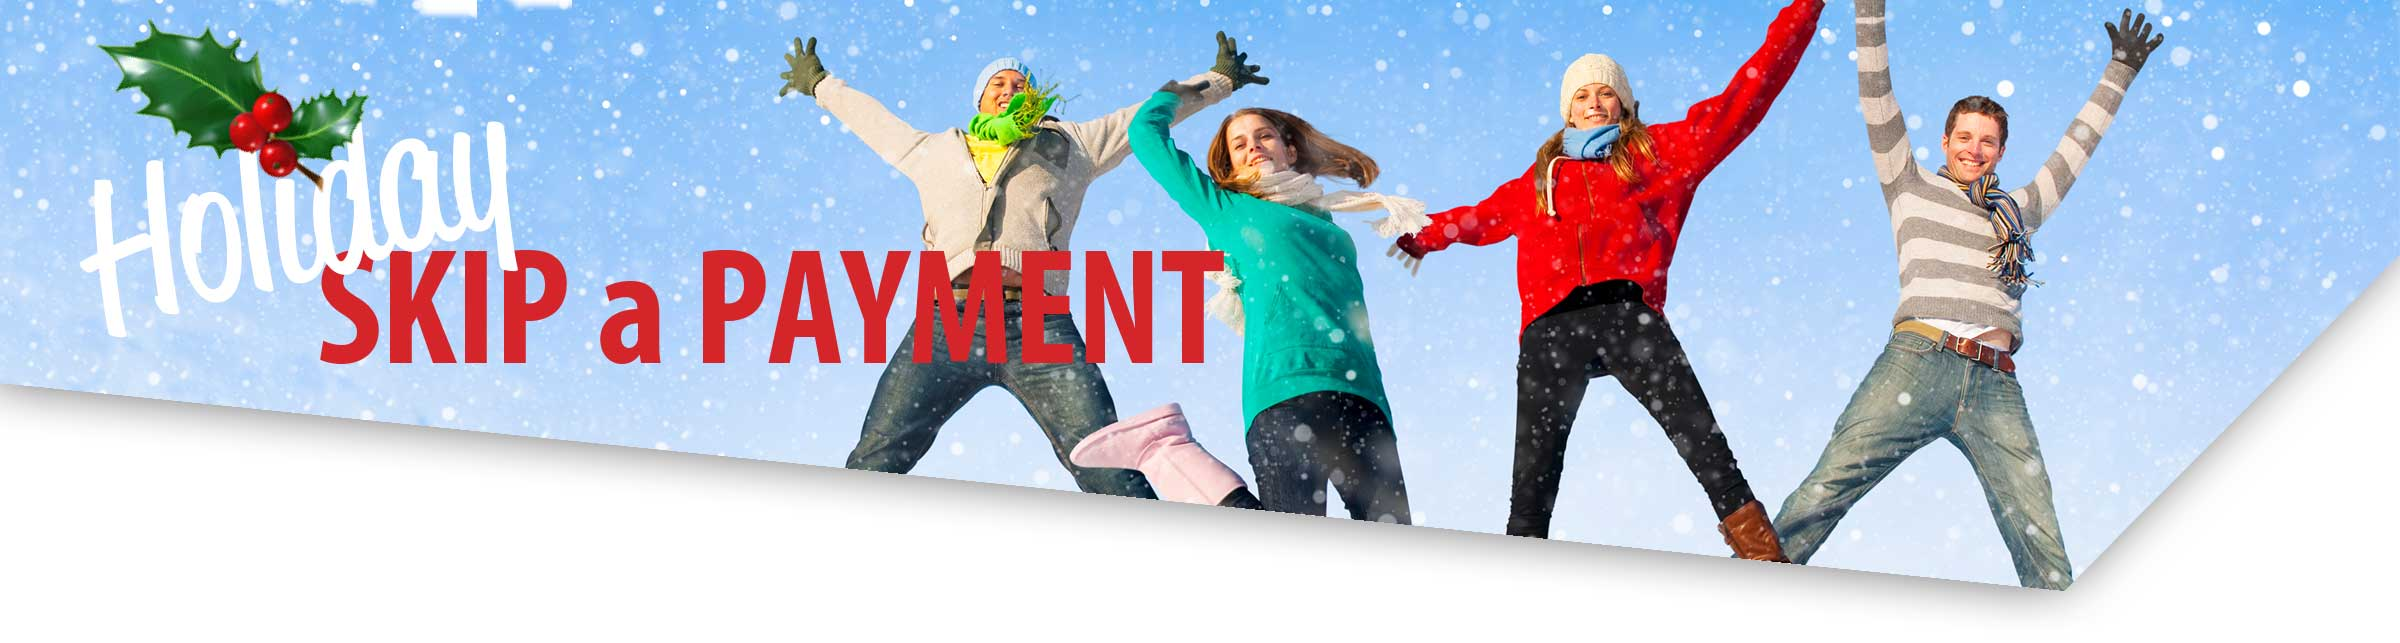 4 young adults colorfully clothed for winter jumping for joy